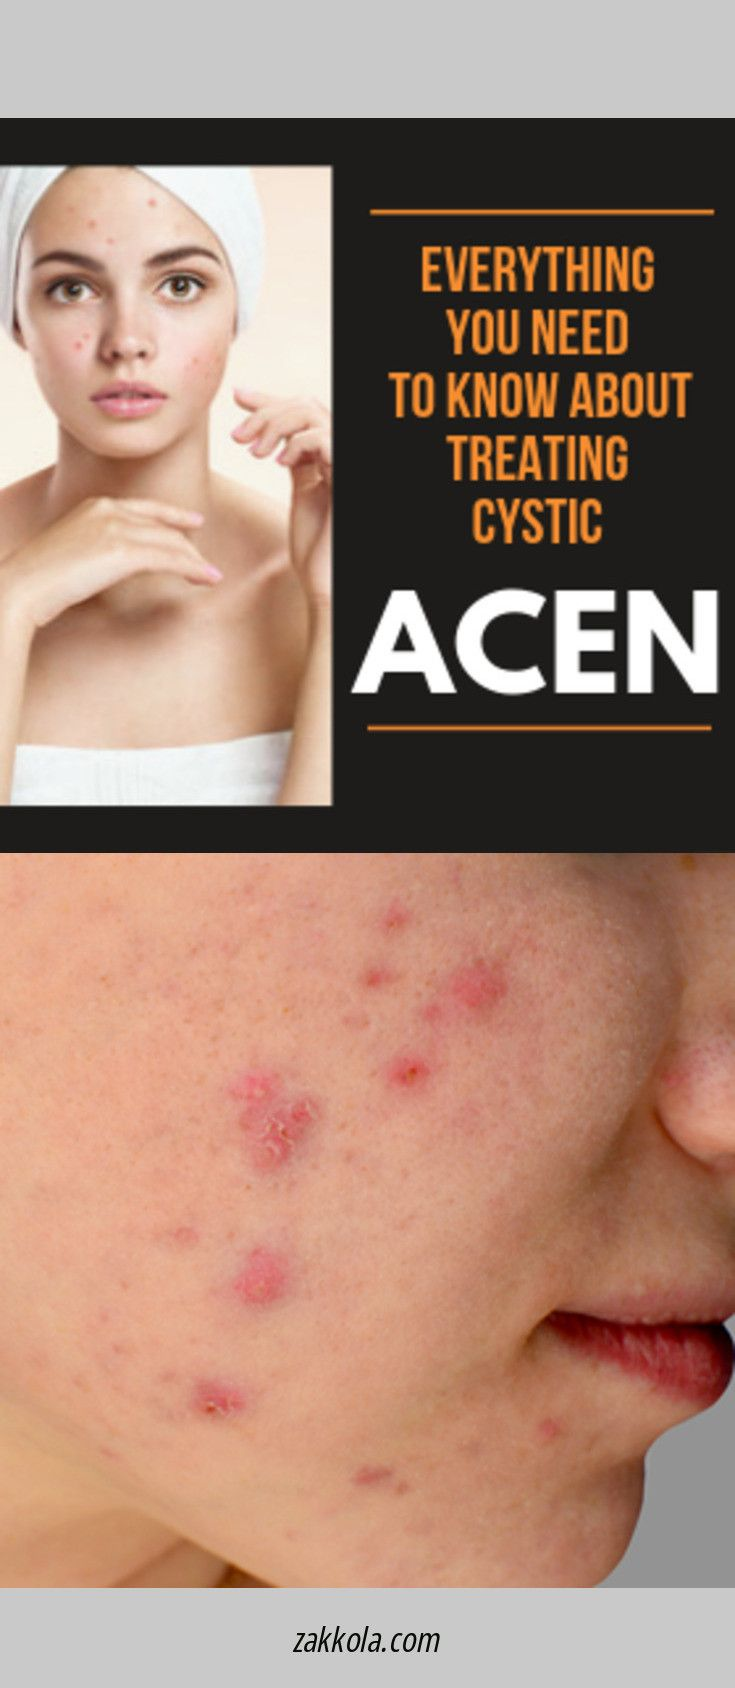 Find more information on acne. Check the webpage for more information